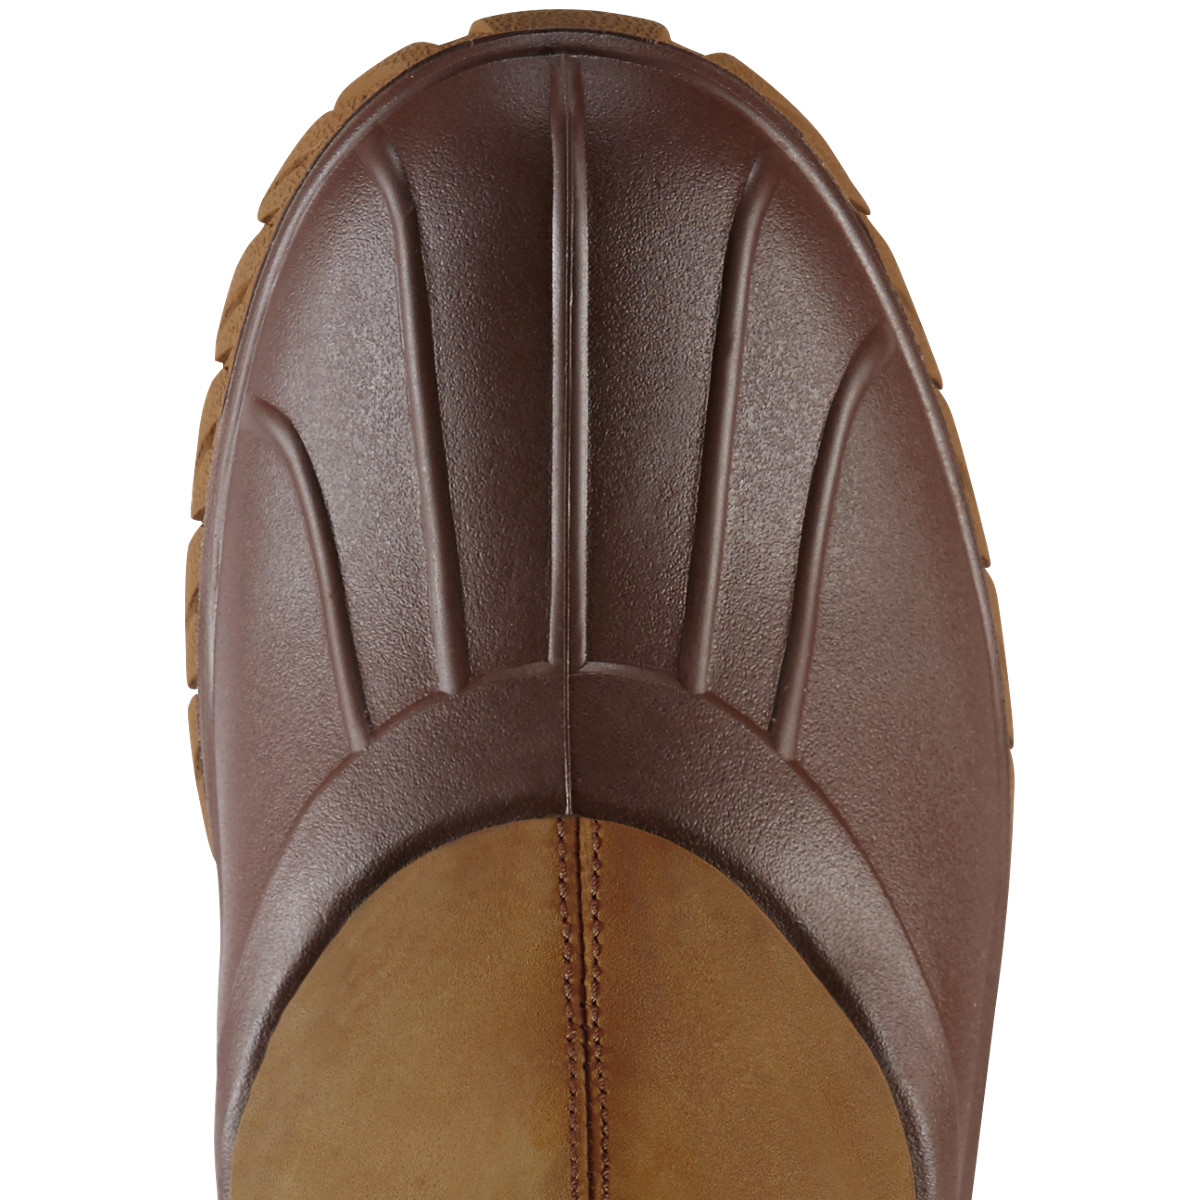 Aero Timber Top Slip-On 6